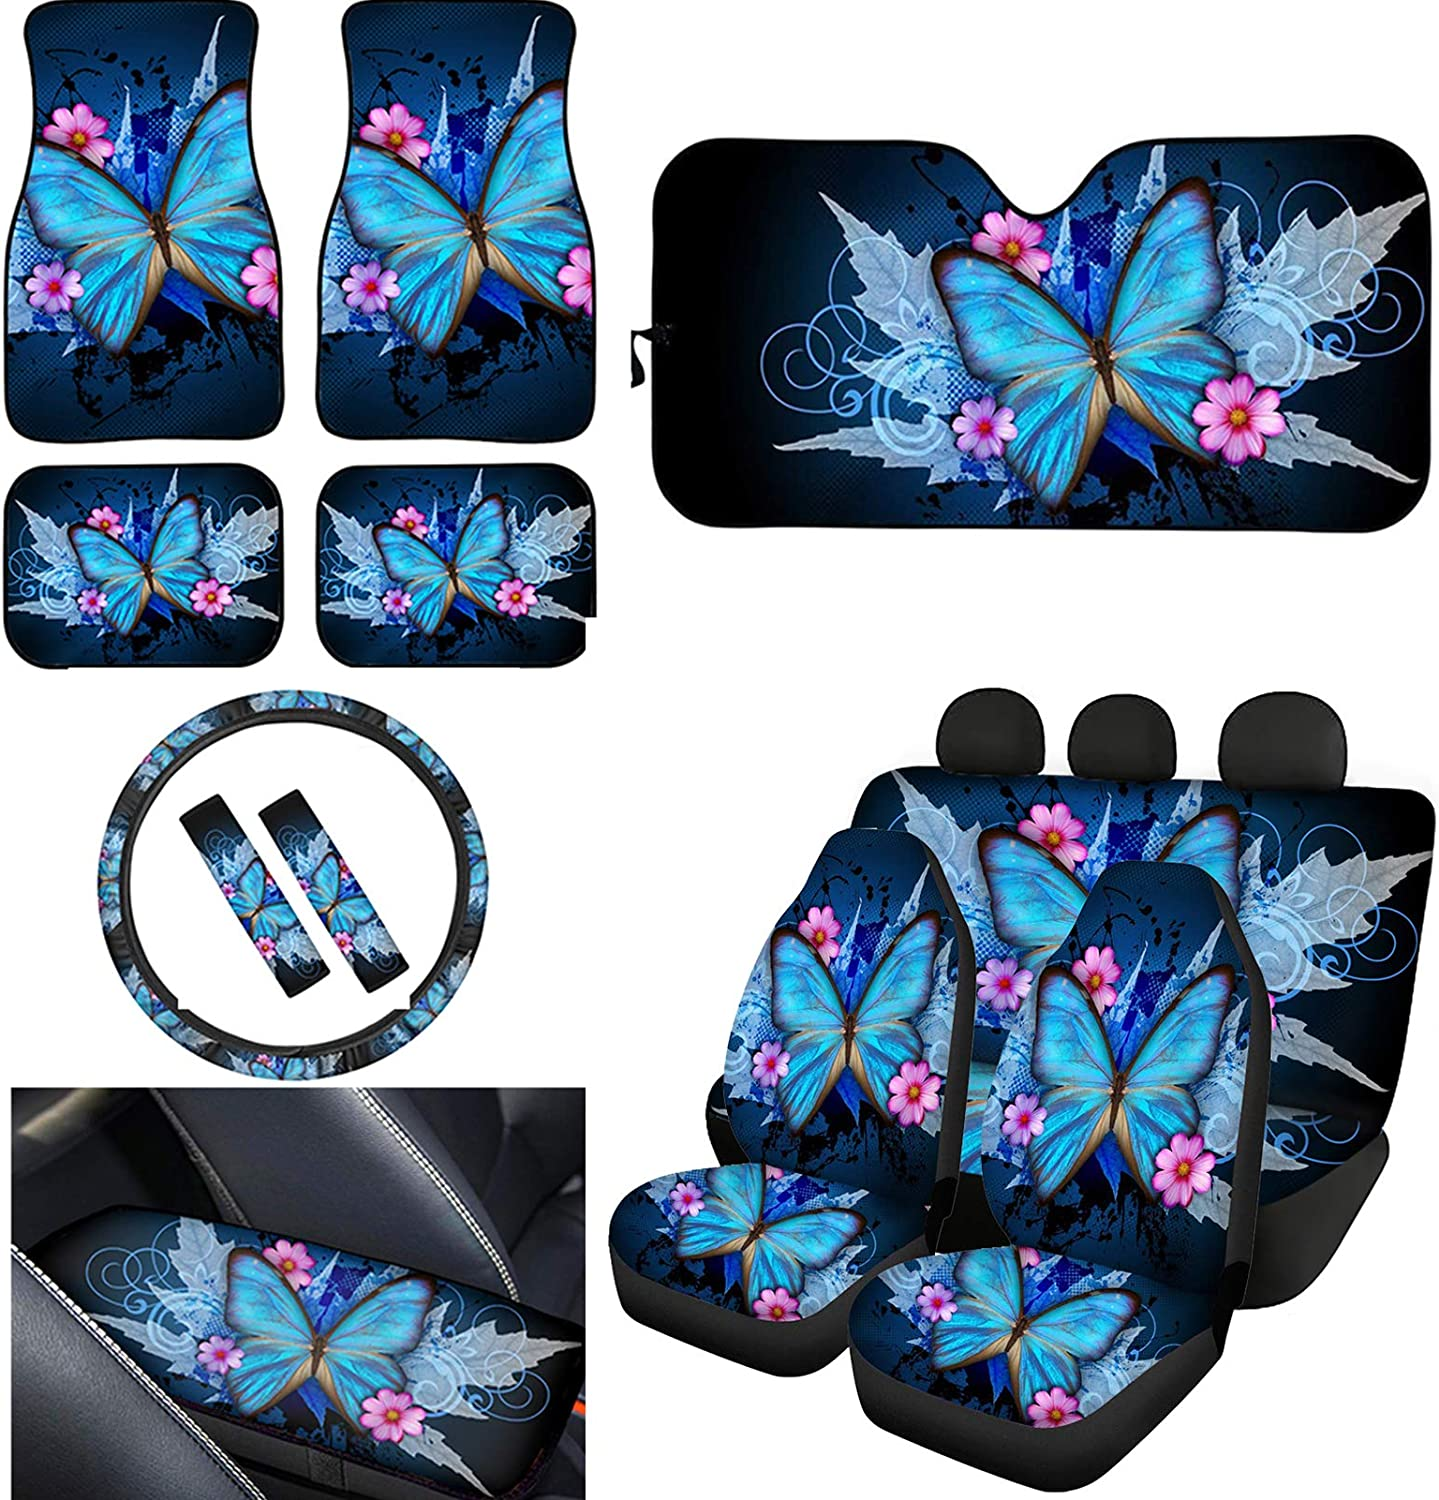 TOADDMOS Chic Blue Butterfly Tucson Mall Bargain Floral Car Se Covers Seat Universal